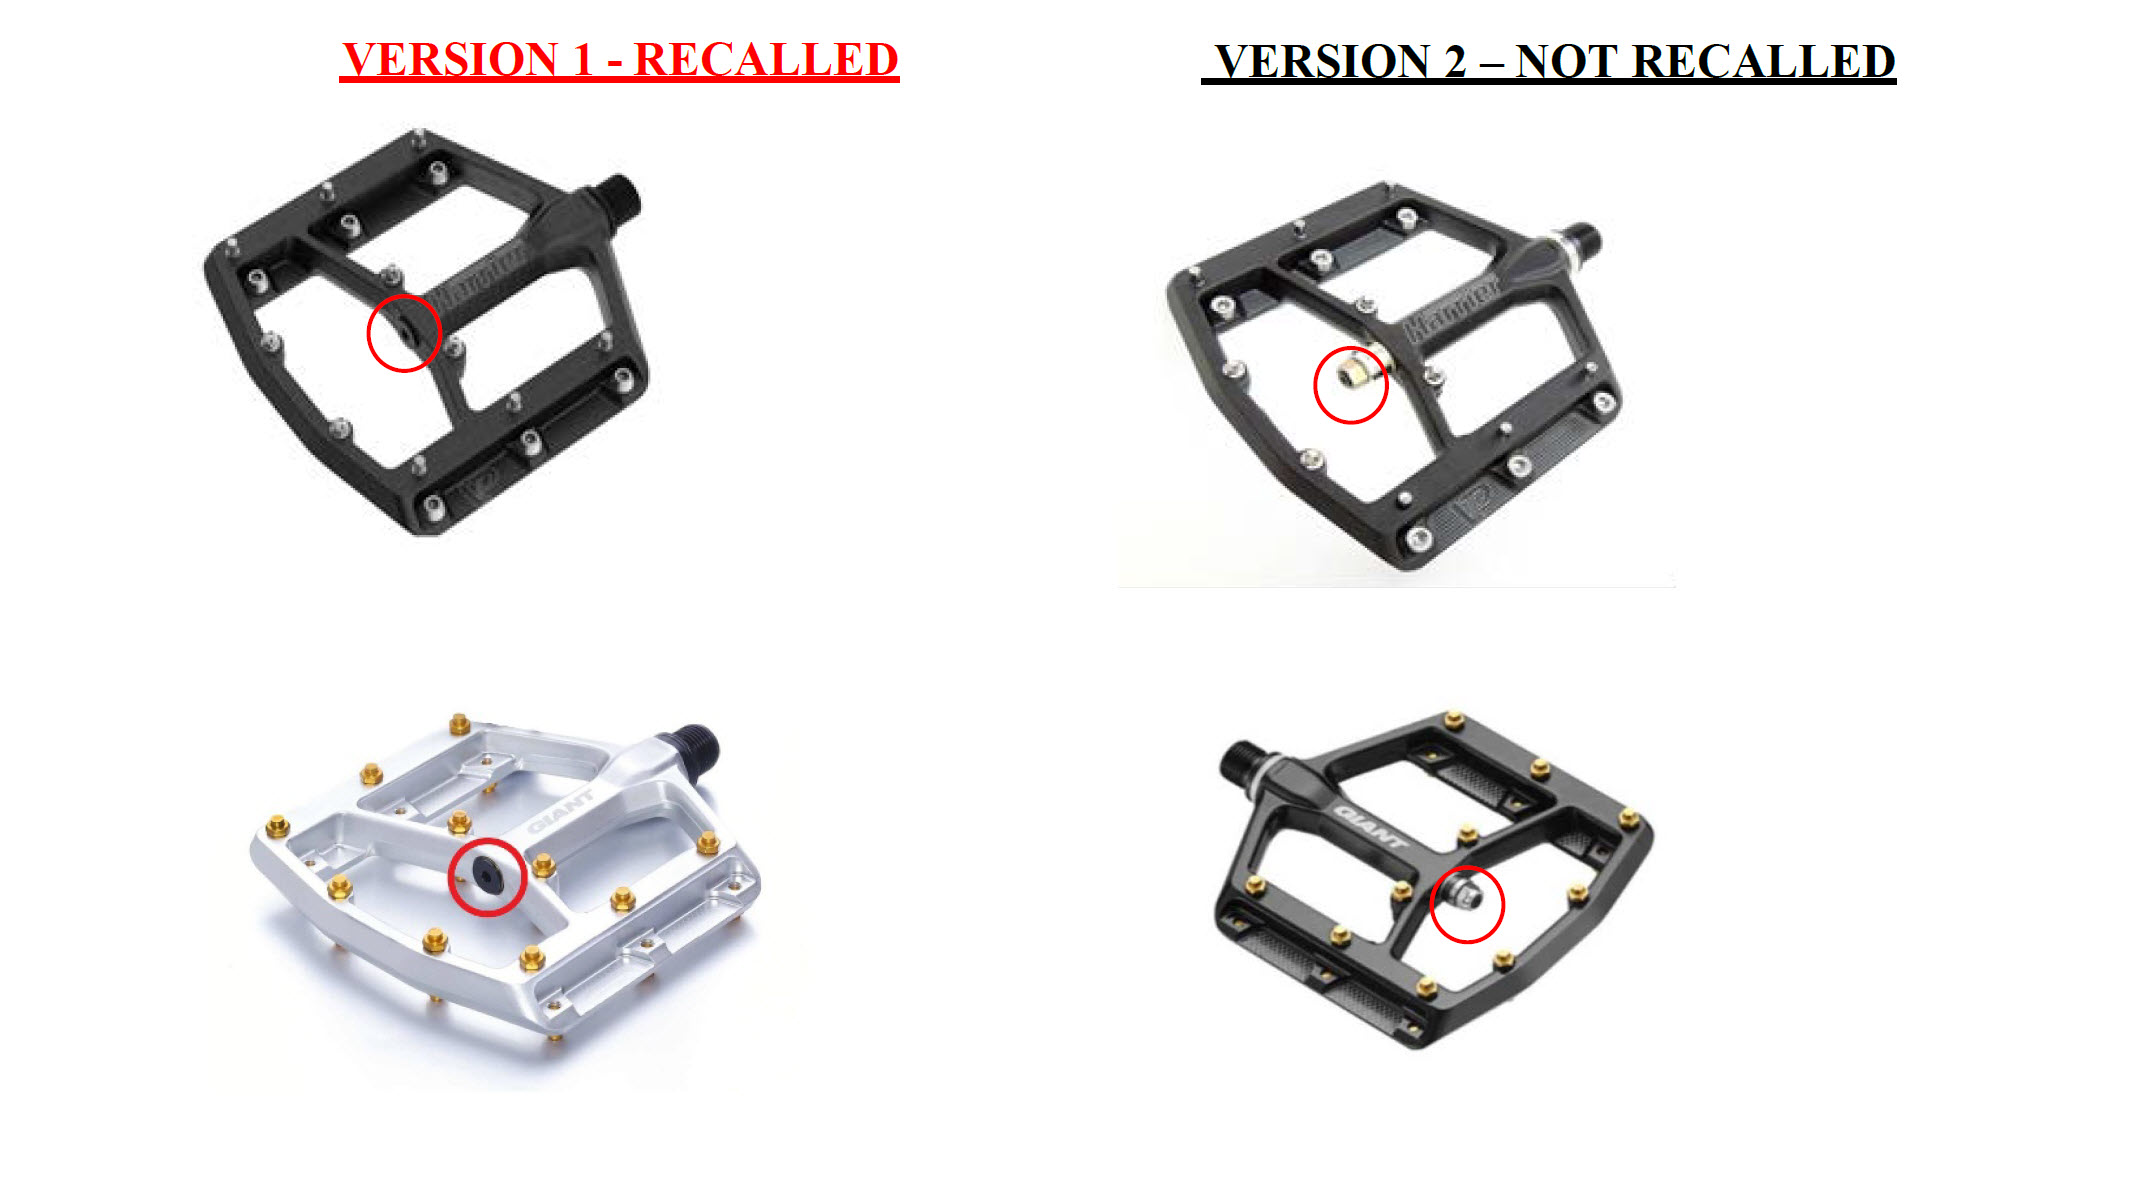 Giant Pinner Bicycle Pedals Recalled